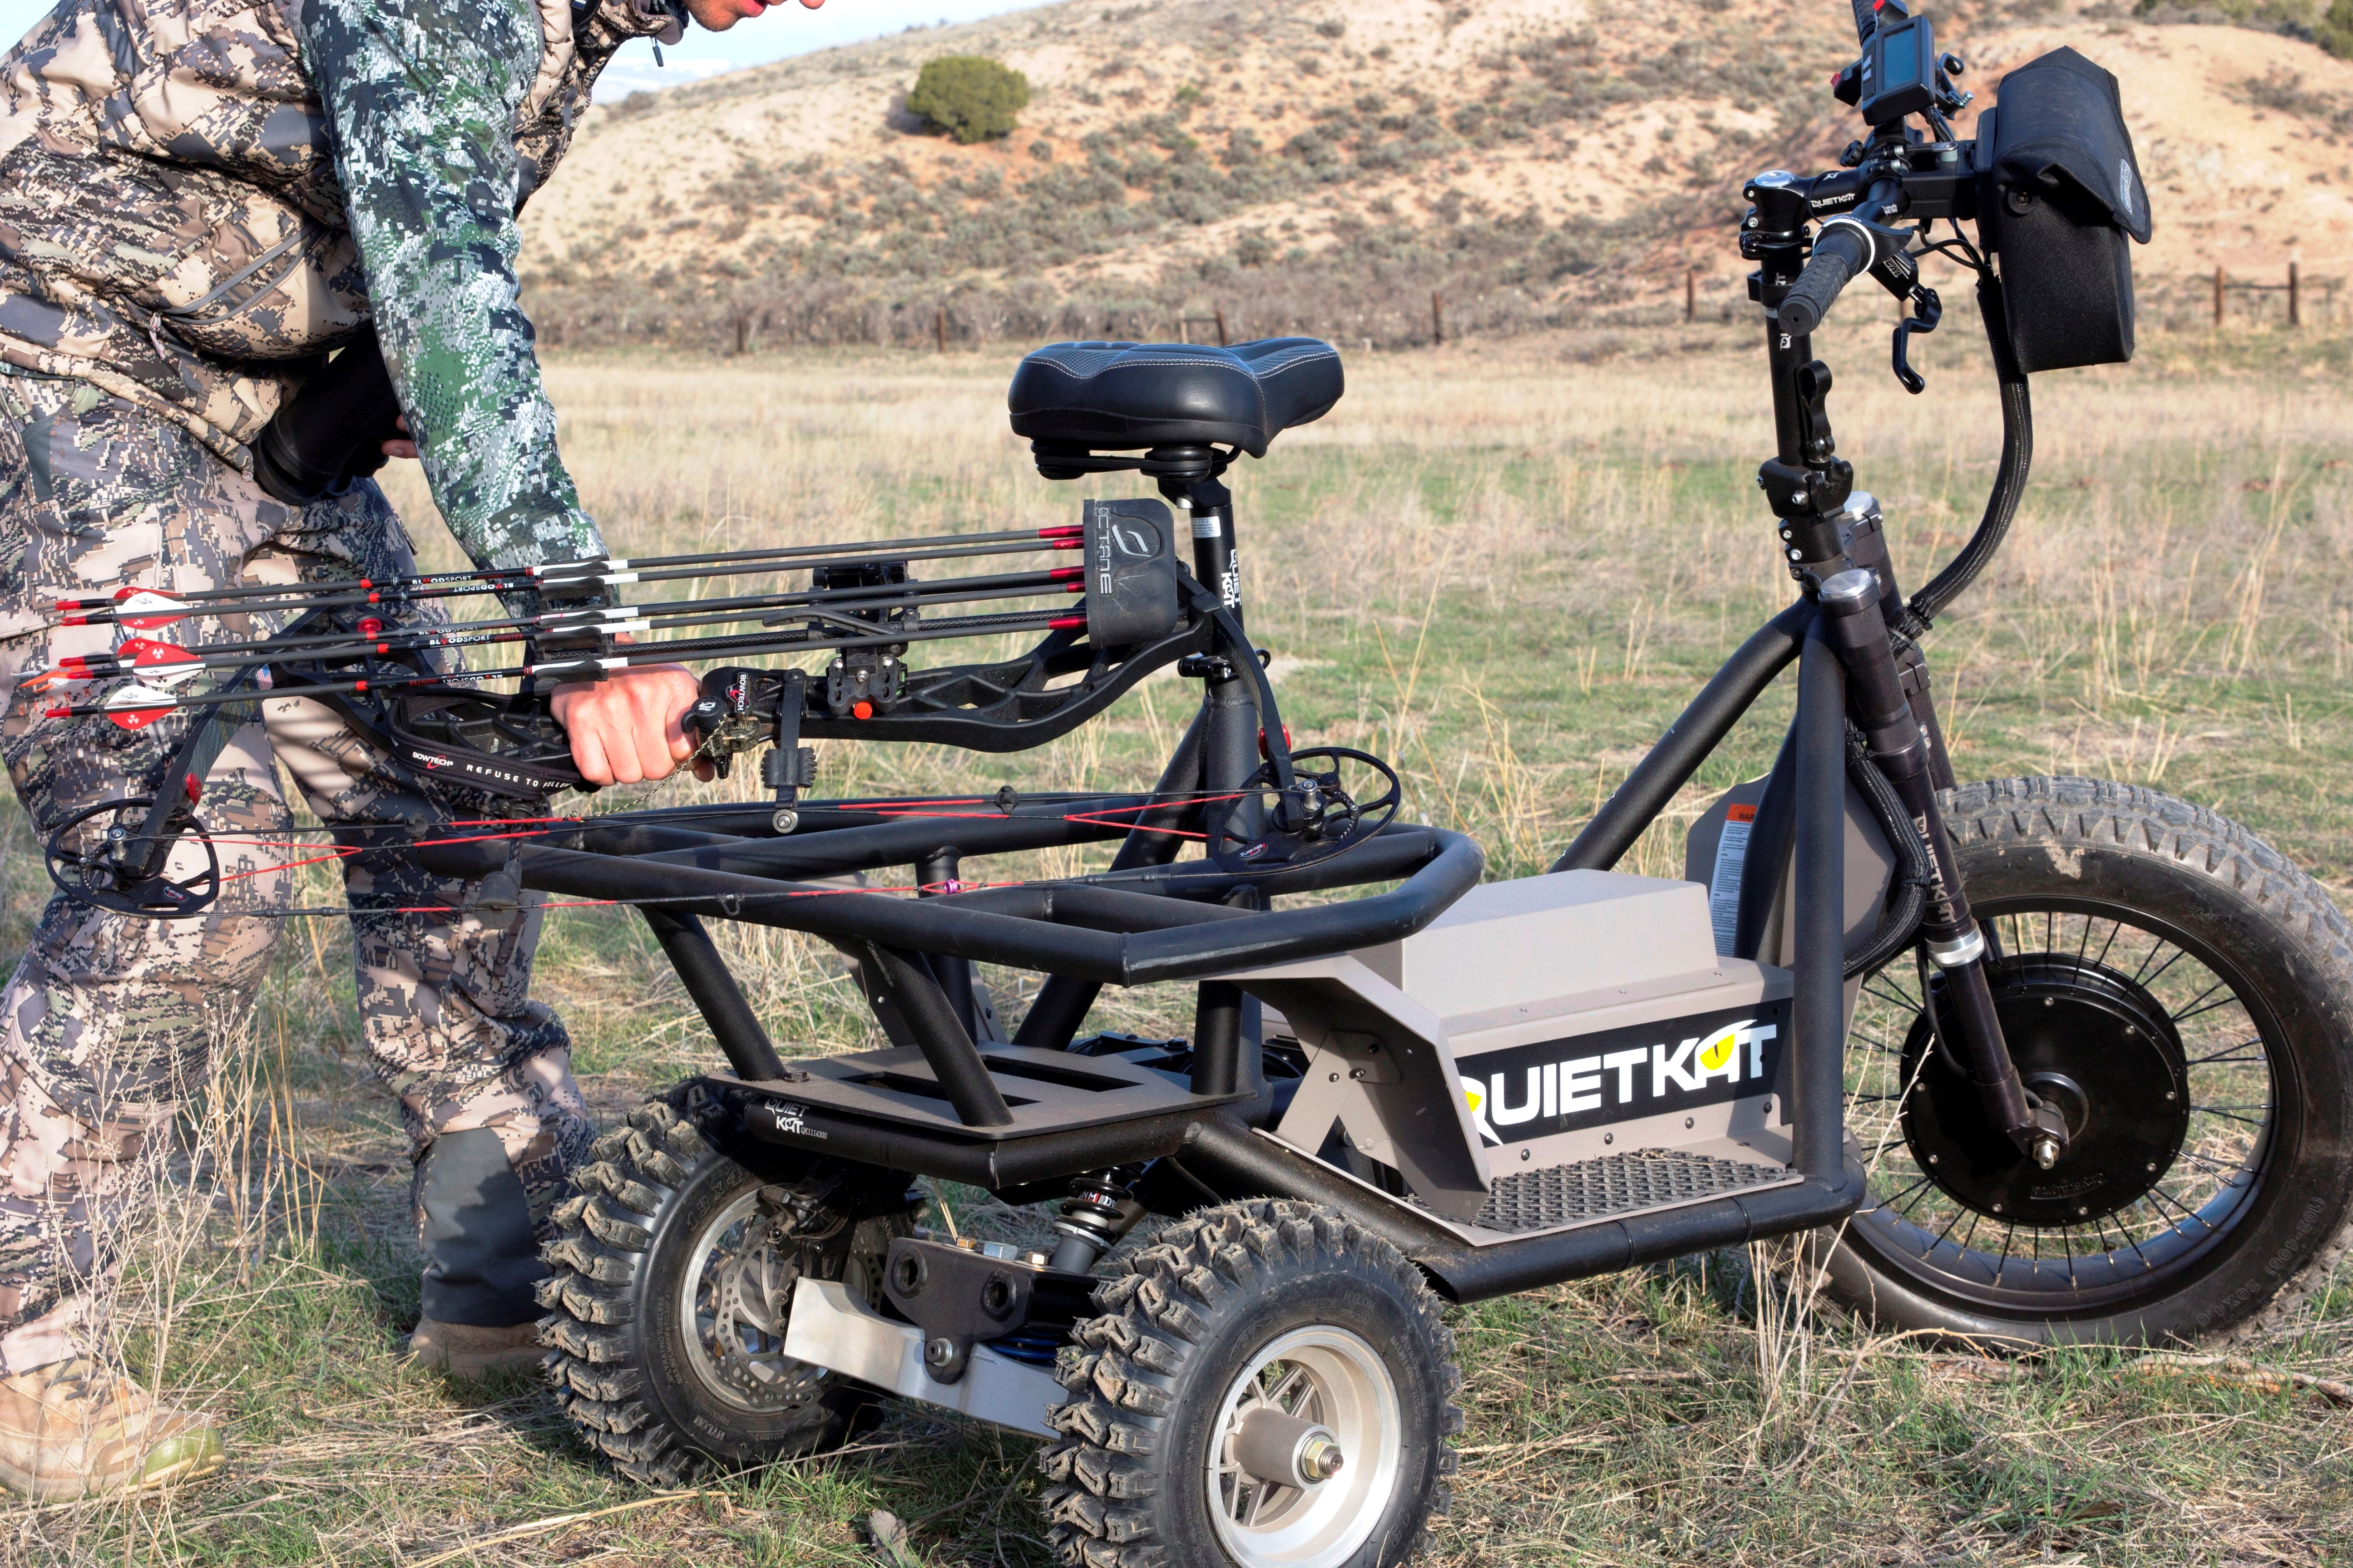 QuietKat Prowler – 60V-Portable Electric All-Terrain Vehicle